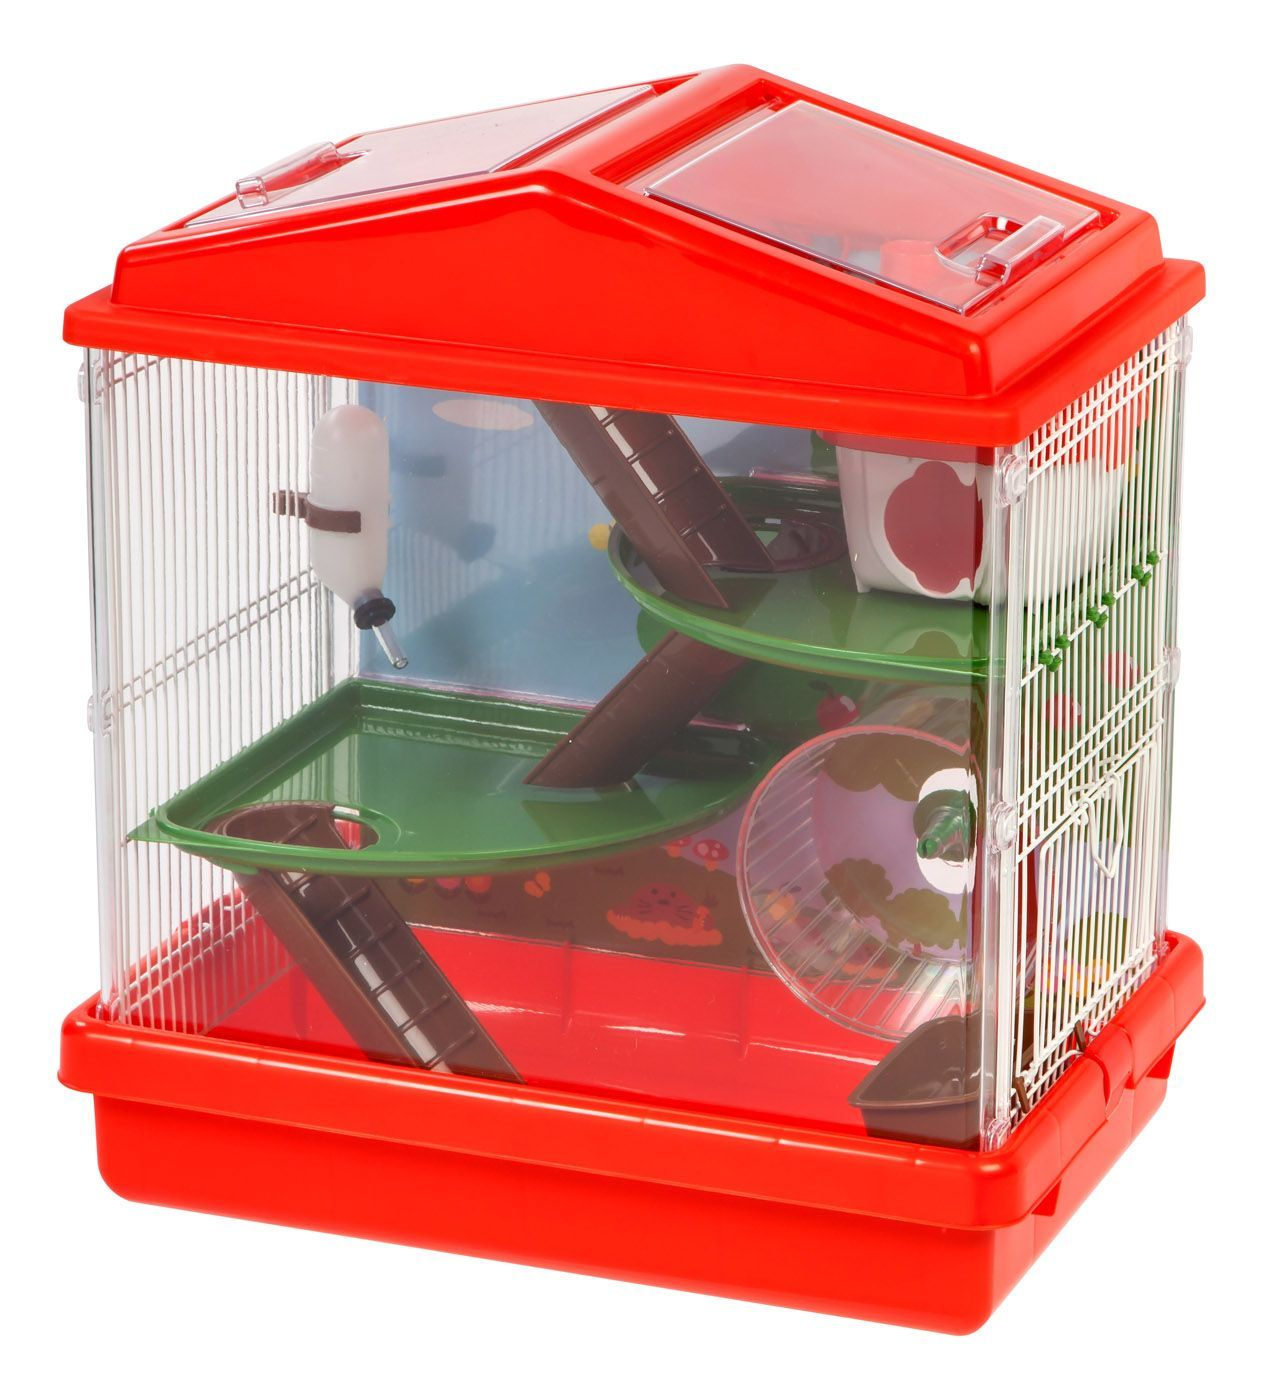 3 Level Hamster Cage Red Hamster Cage Small Pets Pet Cage